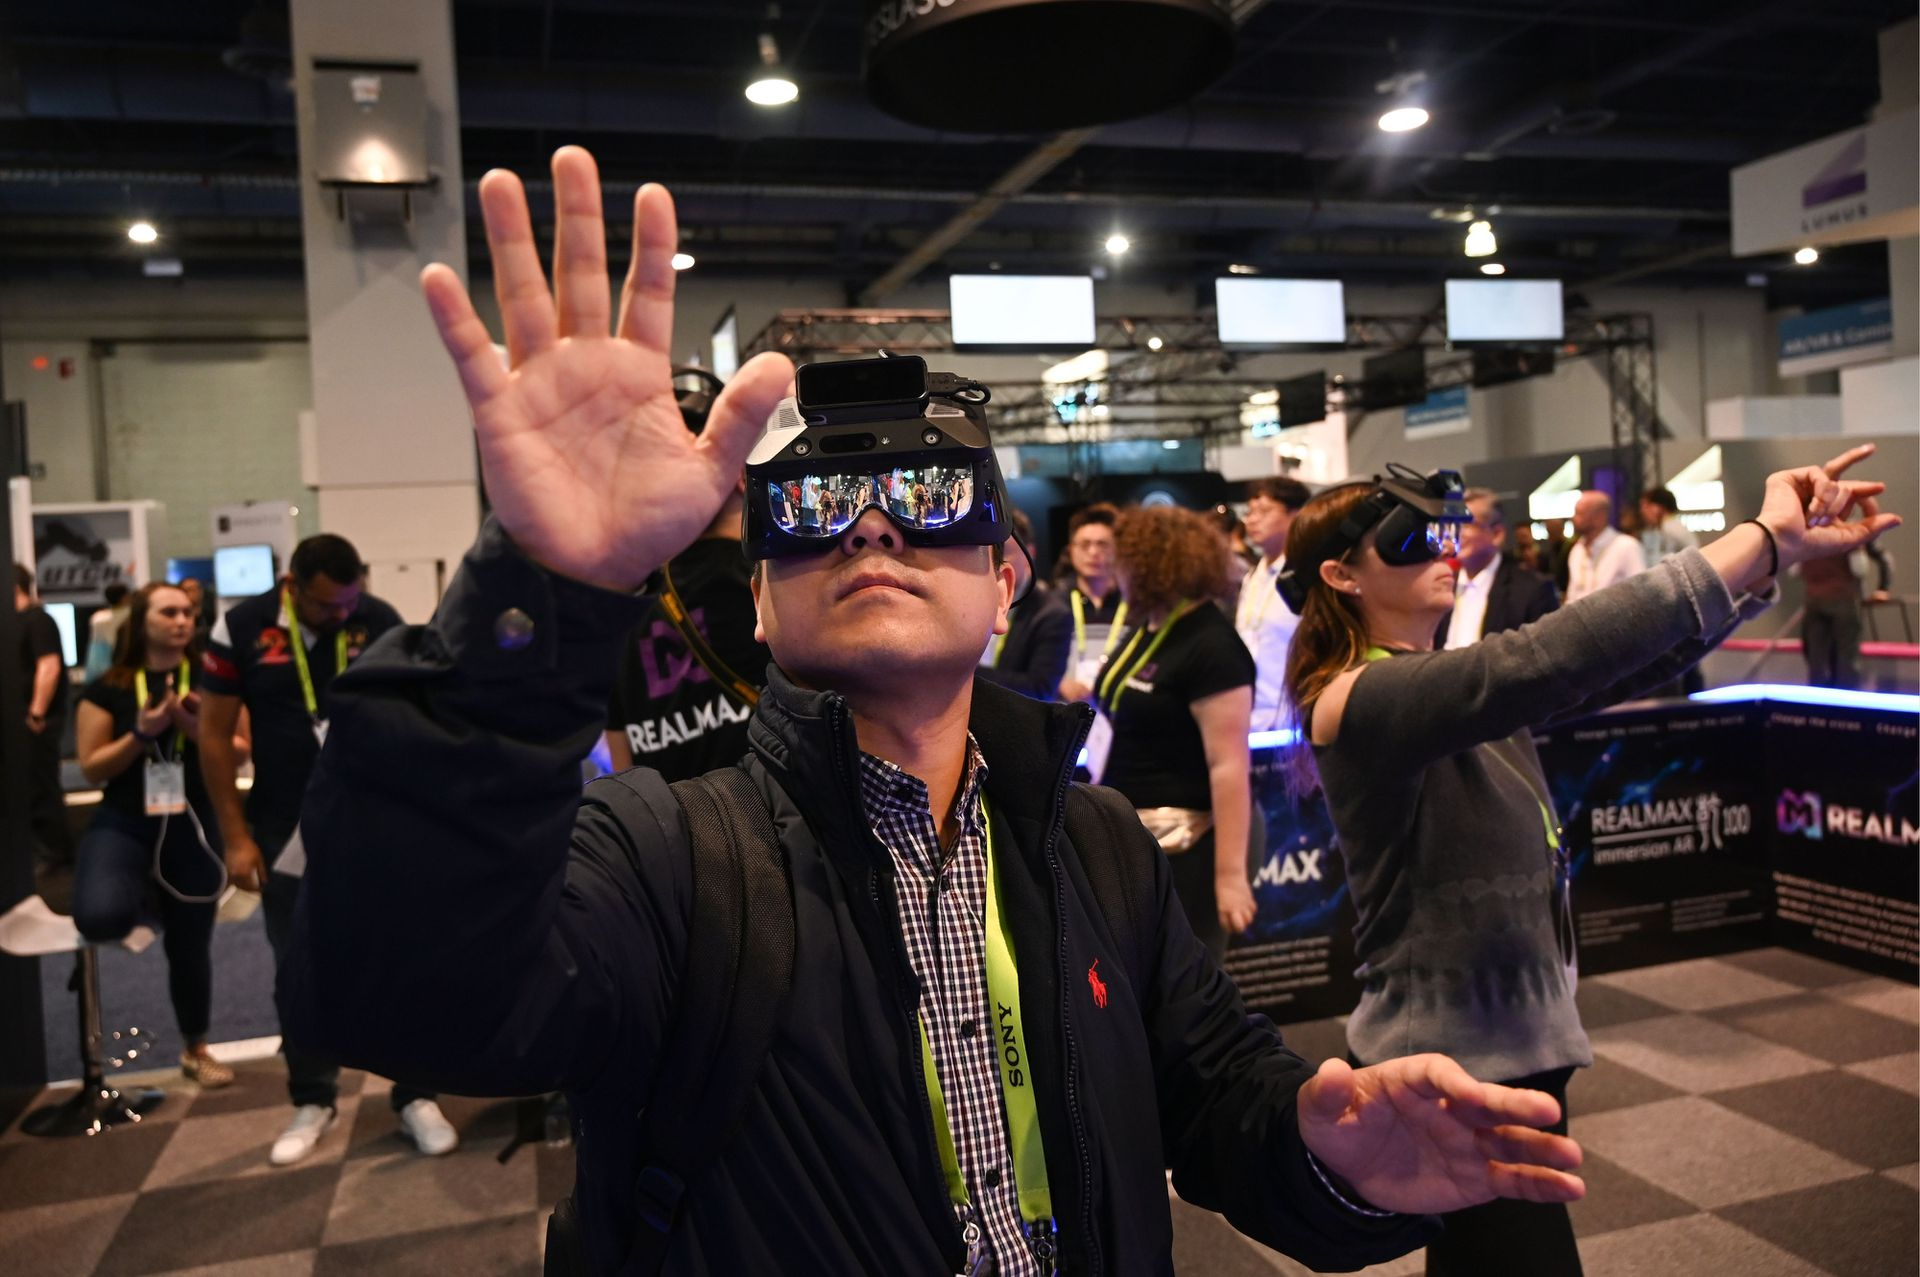 The product announcements to watch for at CES 2020